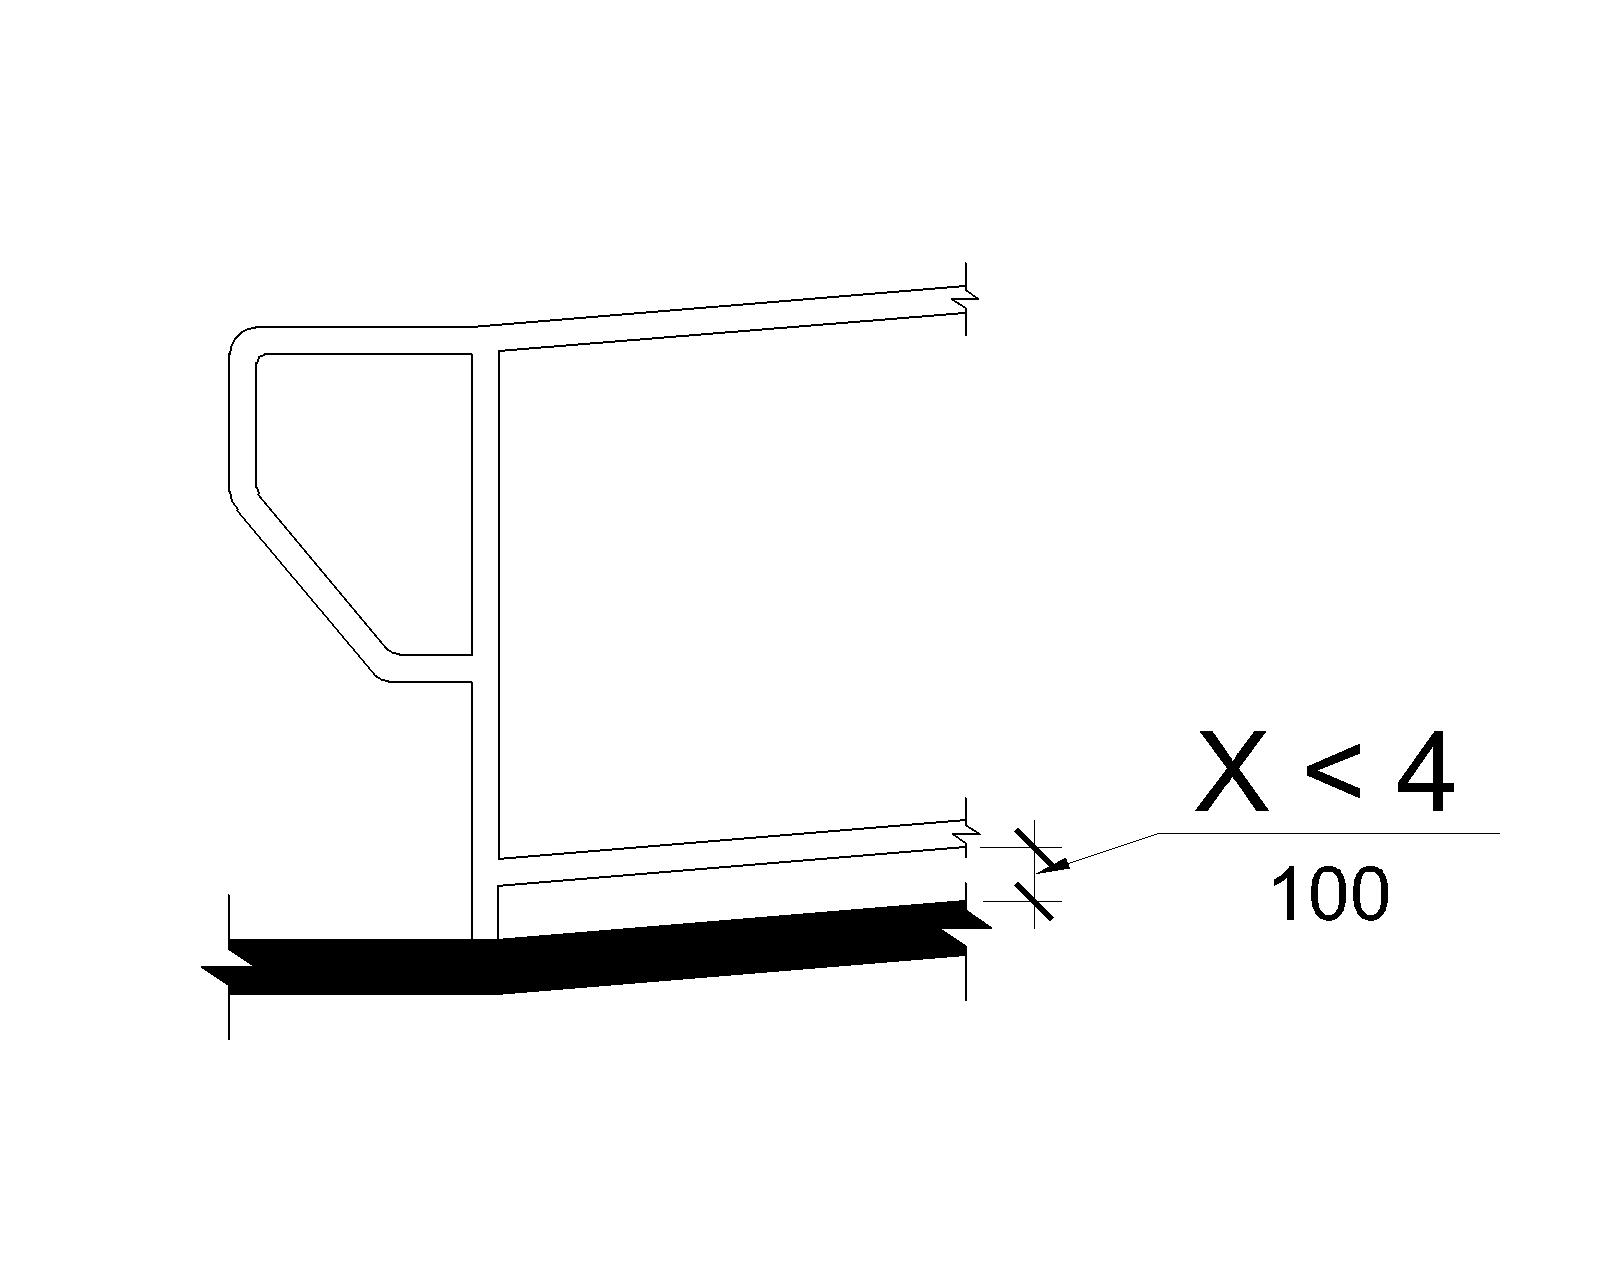 An elevation drawing showing a vertical clearance of less than 4 inches (100 mm) between the ramp surface and the bottom edge of a horizontal rail.